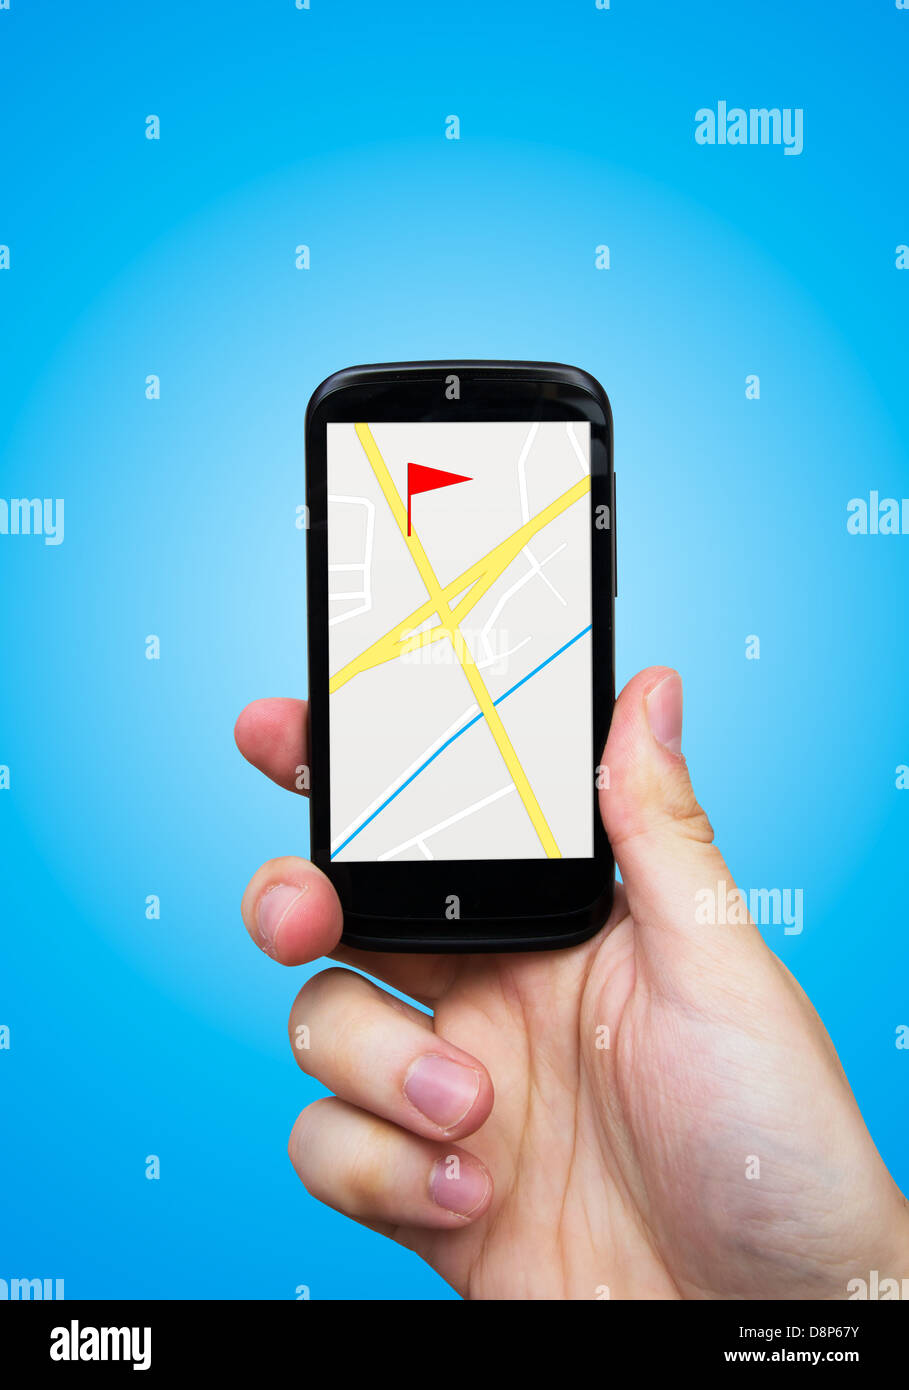 Man holding smart phone with GPS navigation - Stock Image